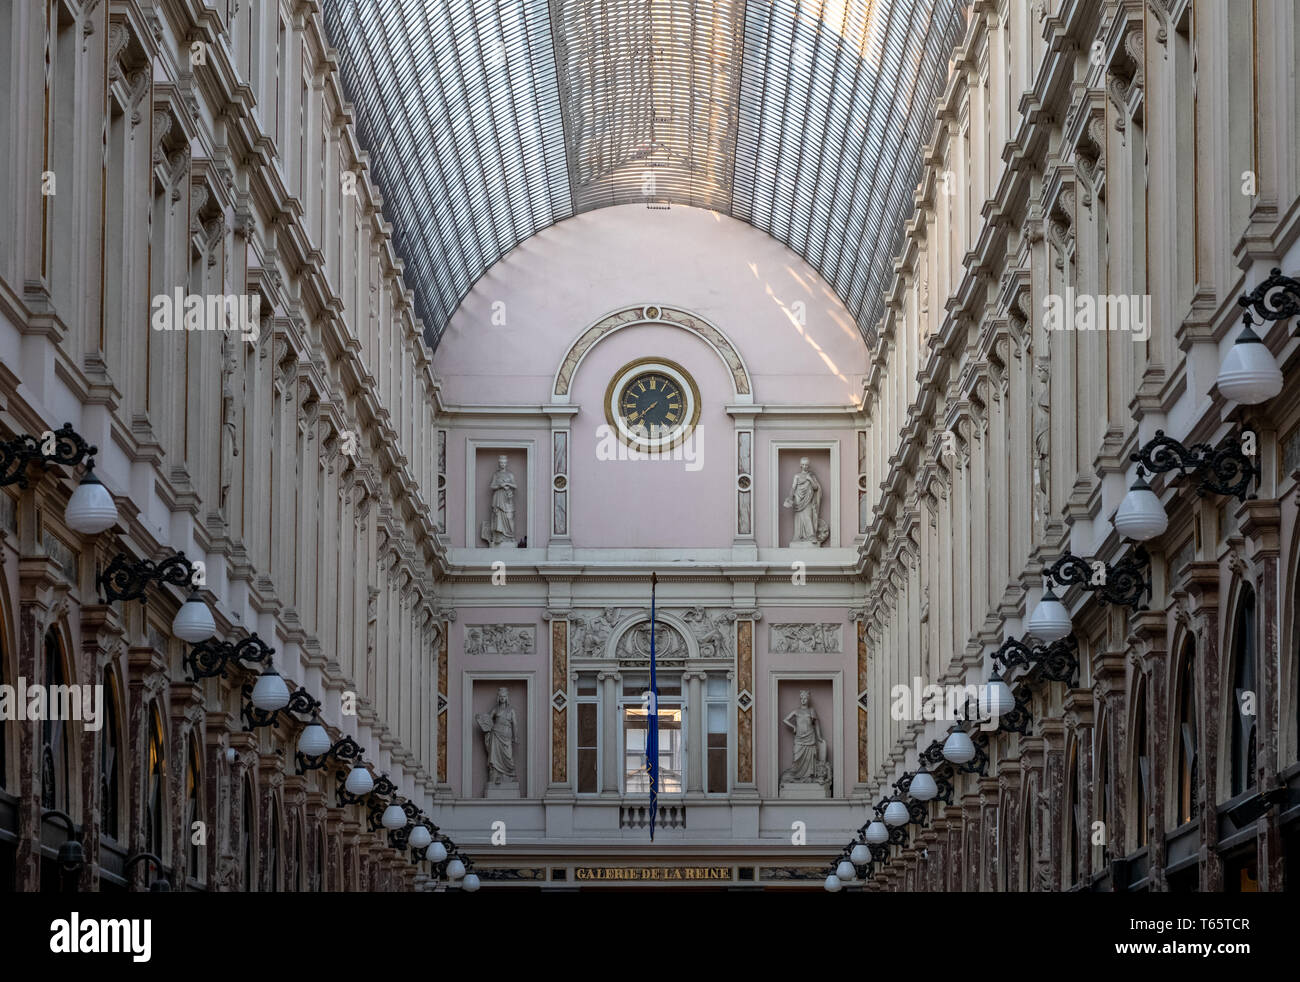 Galeries Royales Saint Hubert. Ornate nineteenth century shopping arcades in the centre of Brussels, designed by Jean-Pierre Cluysenaer. - Stock Image